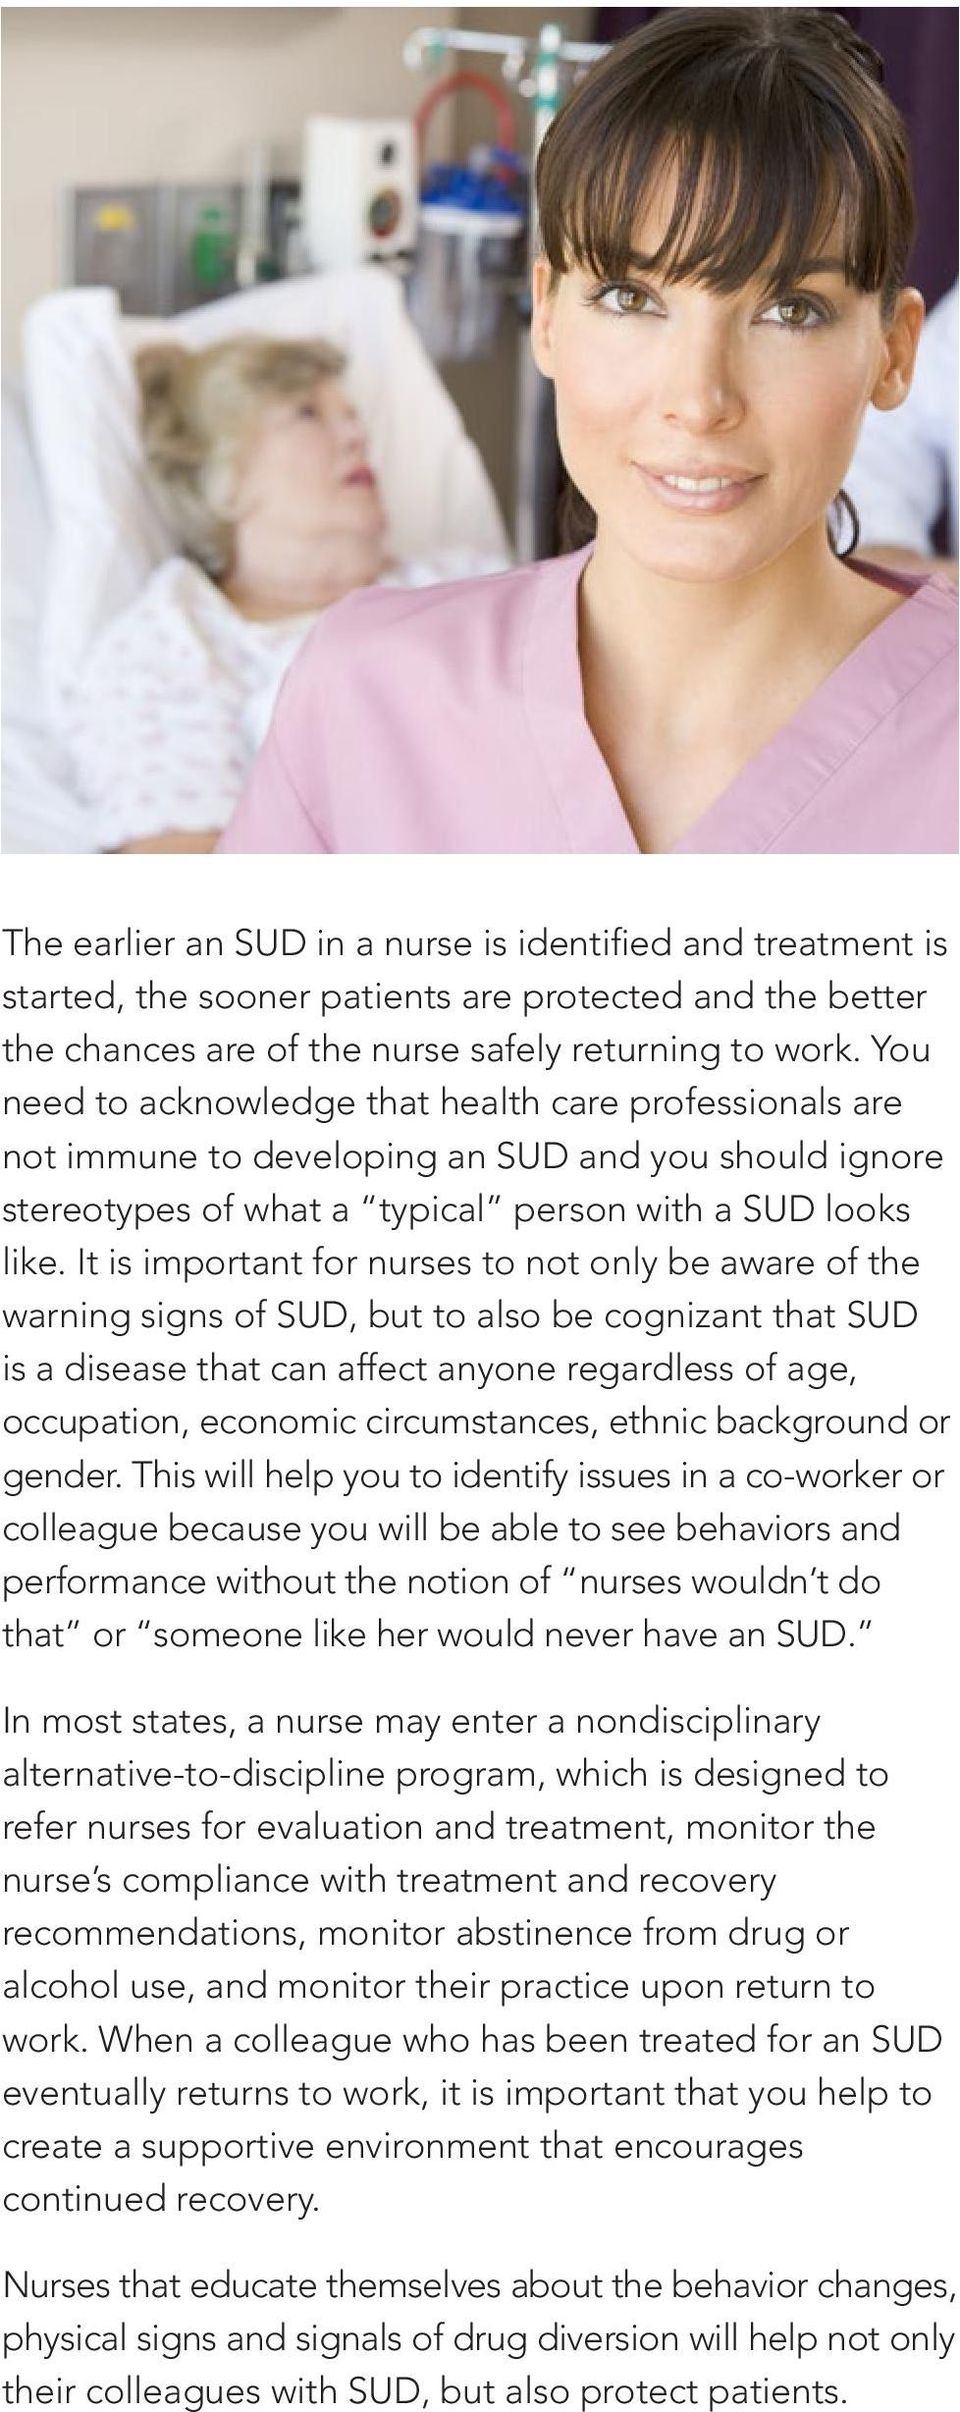 It is important for nurses to not only be aware of the warning signs of SUD, but to also be cognizant that SUD is a disease that can affect anyone regardless of age, occupation, economic